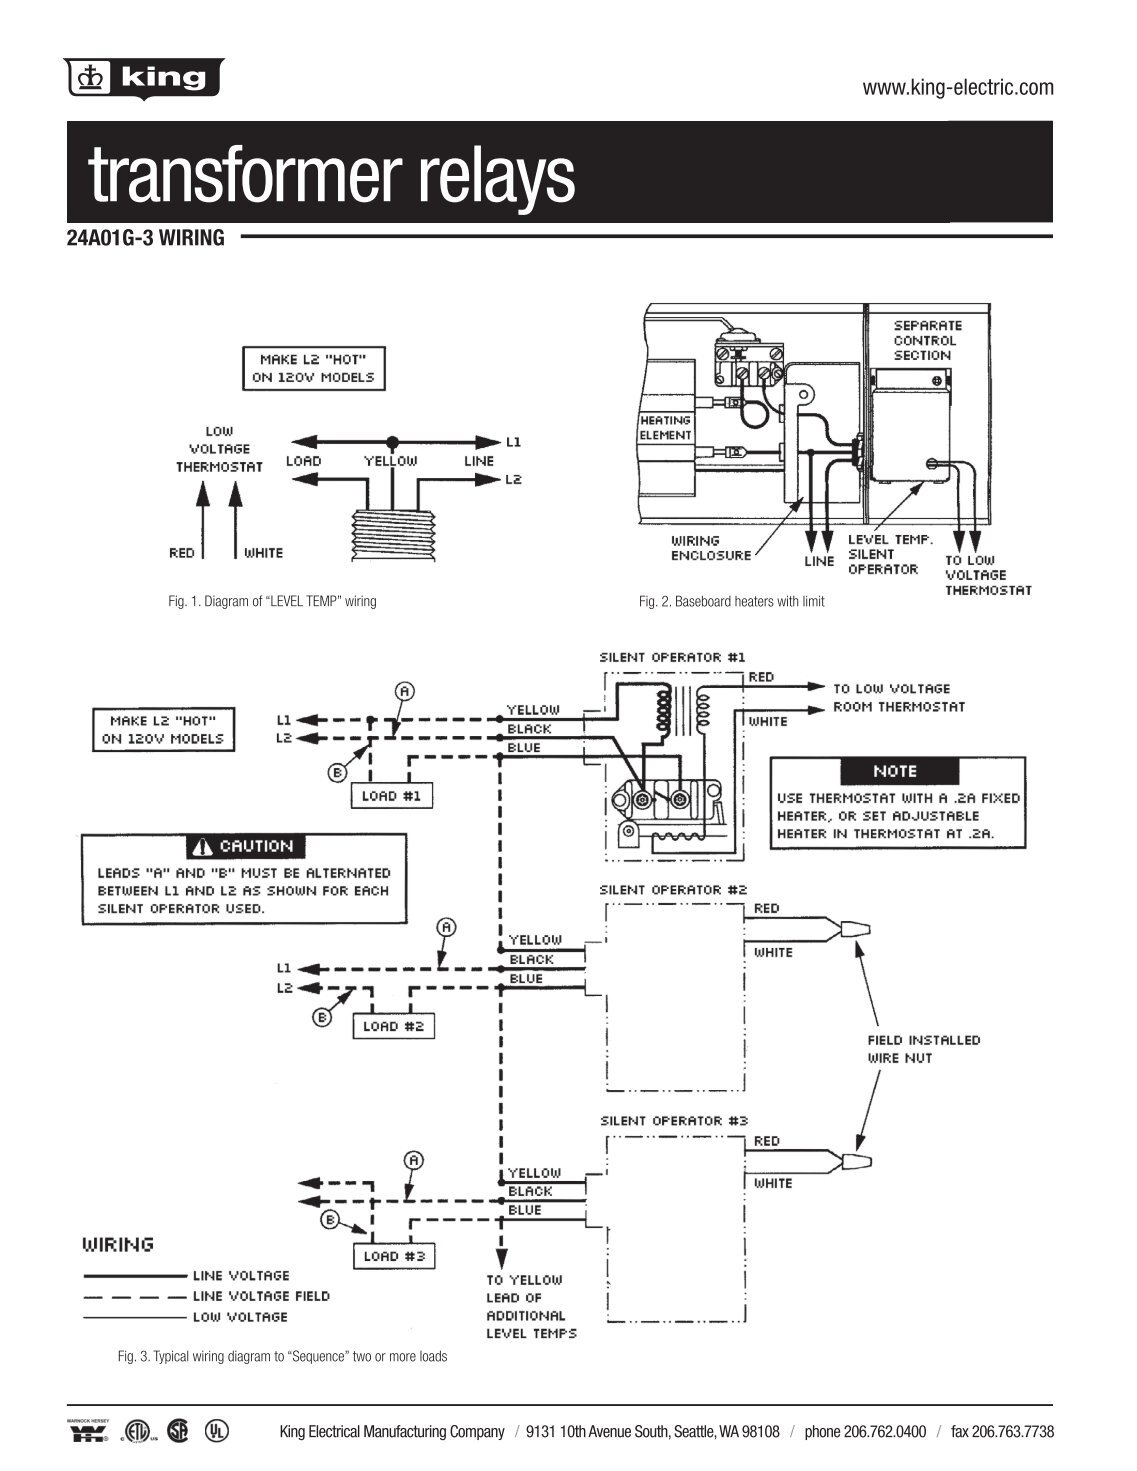 Ng1 Wiring Diagram Dc Dc - List of Wiring Diagrams on